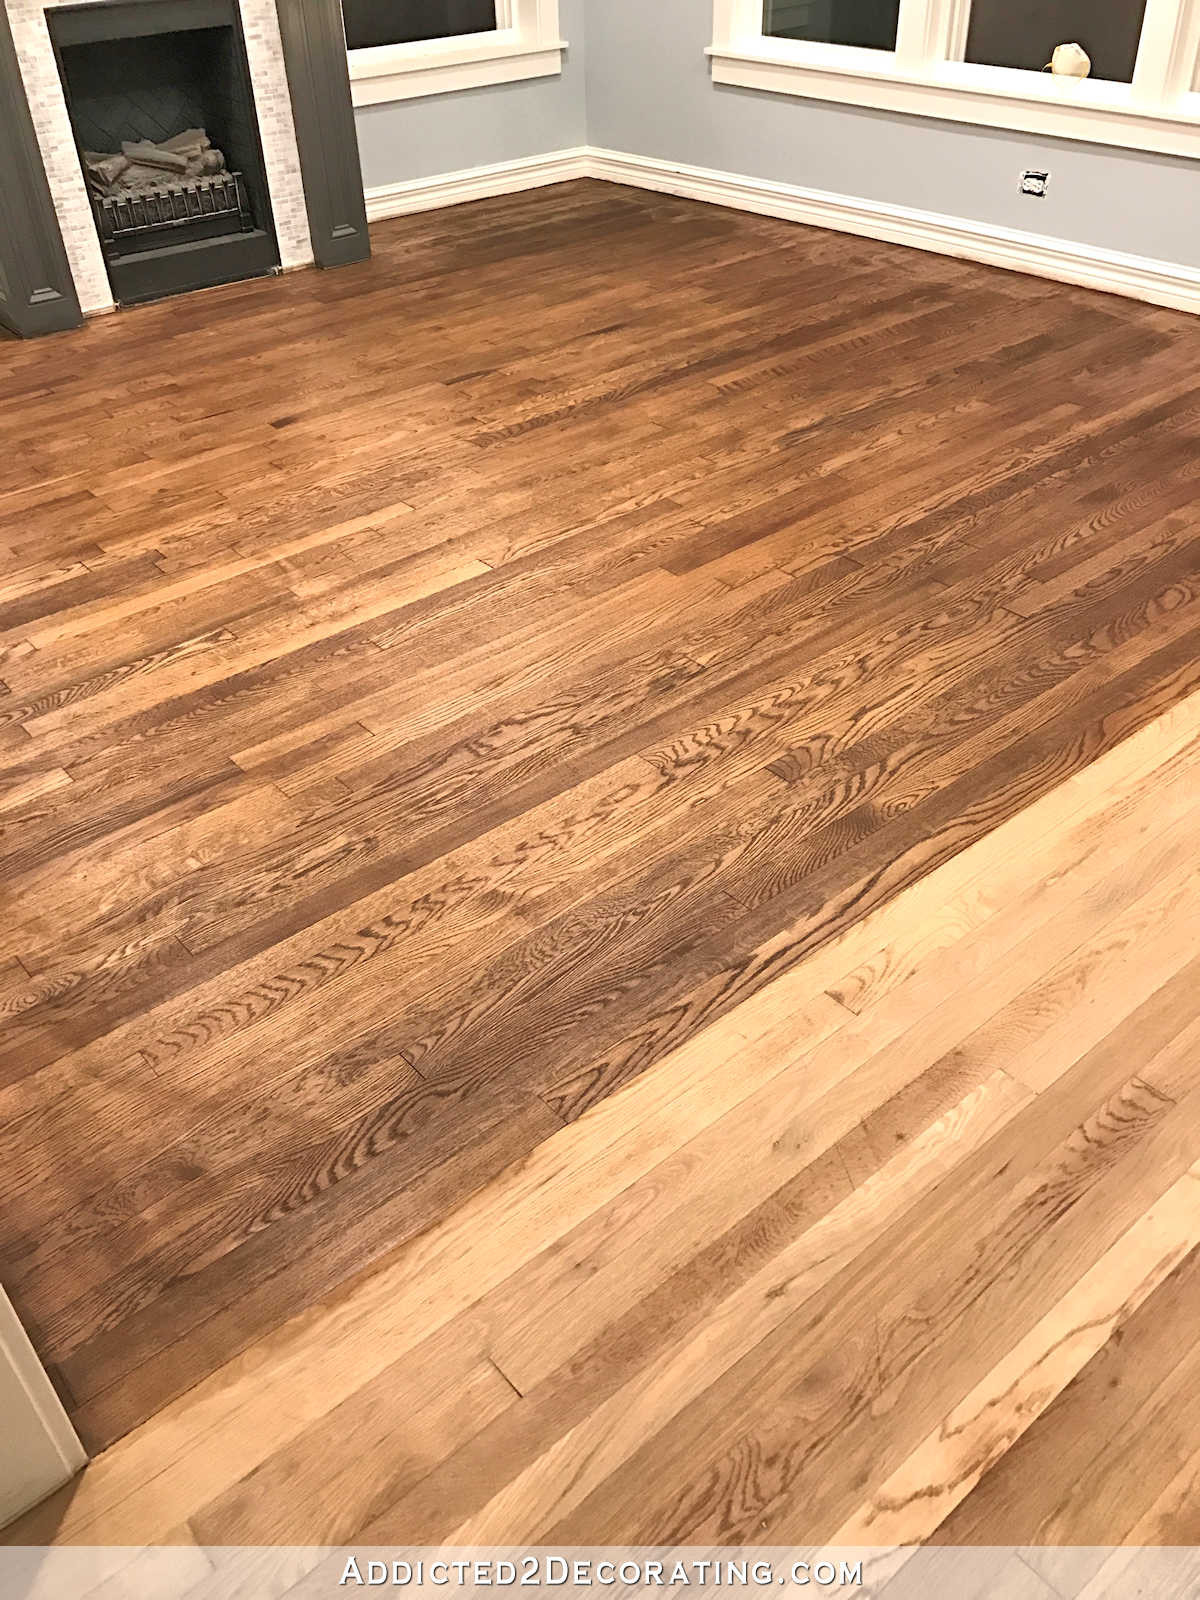 how much does oak hardwood flooring cost of adventures in staining my red oak hardwood floors products process with regard to staining red oak hardwood floors 7 stain on the living room floor